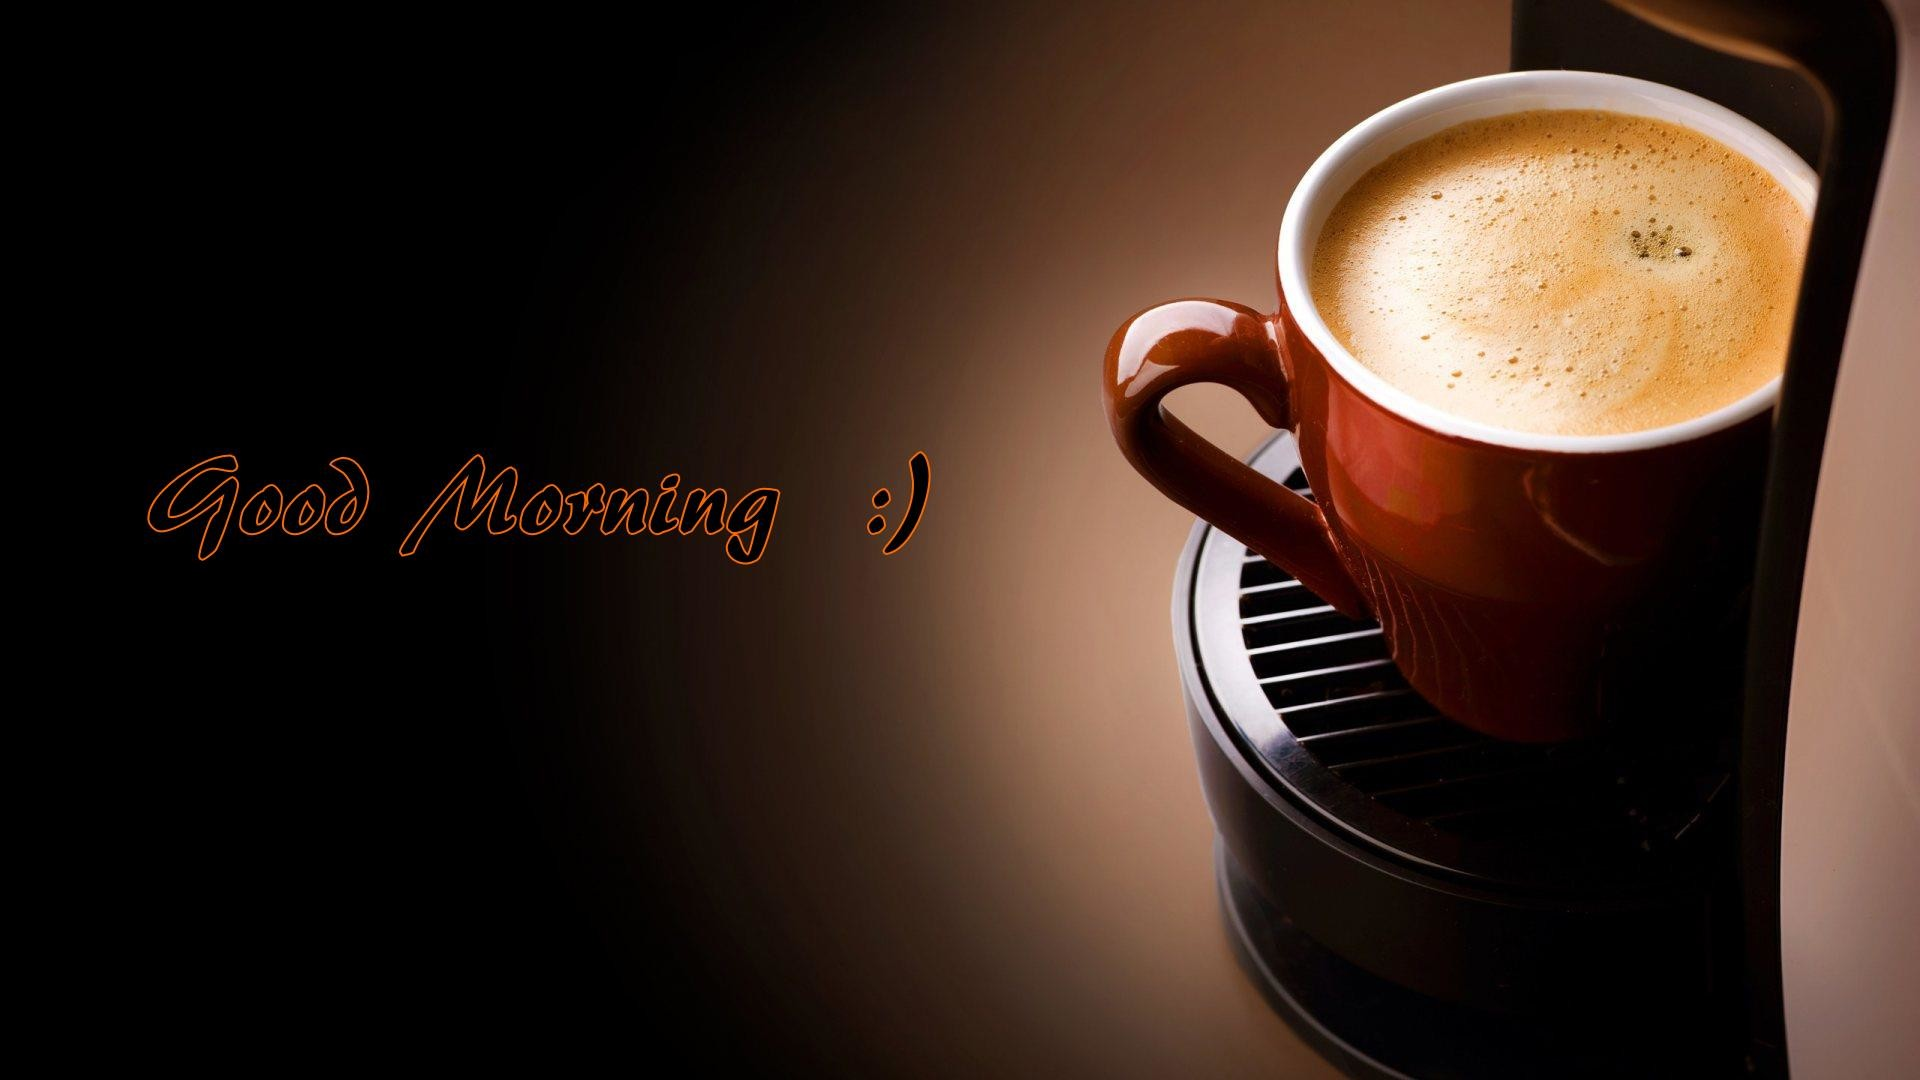 1920x1080 good morning have a nice day wallpapers | Good Morning | Pinterest |  Wallpaper, Morning pictures and Animated gif